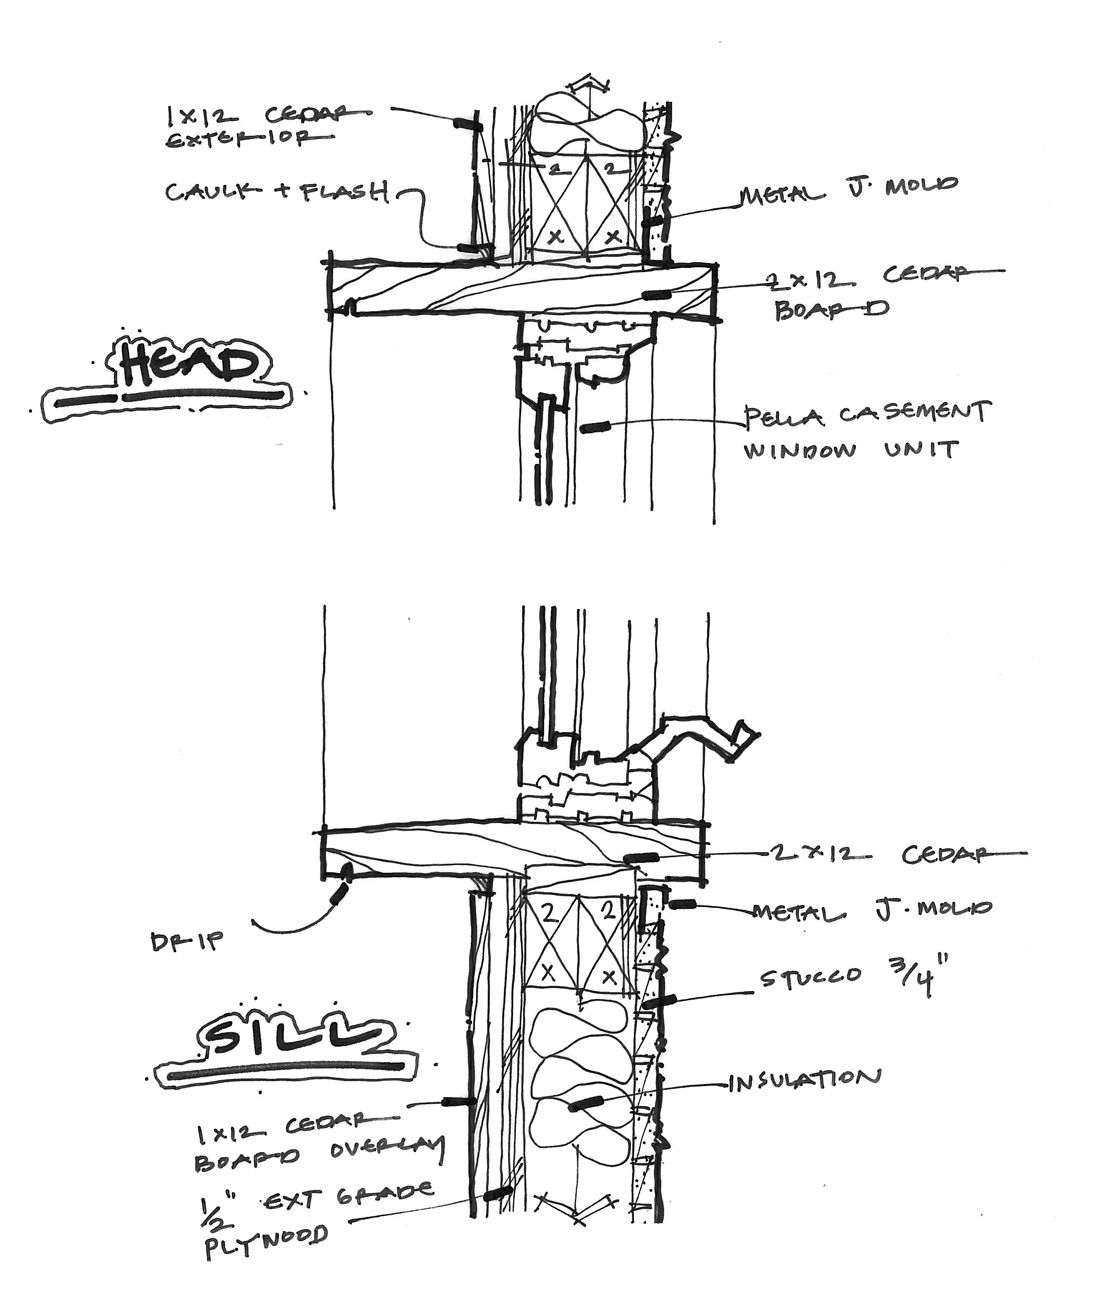 Build wood window casement google search woodworking for Bay window plan detail